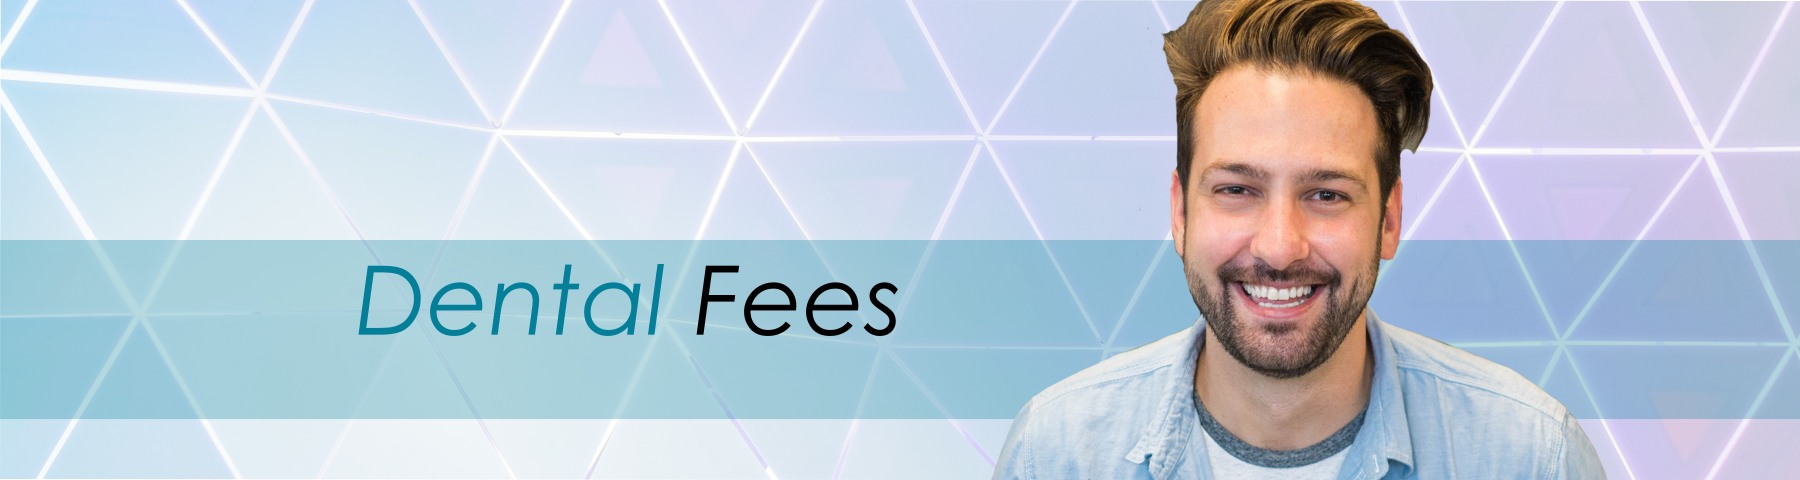 ranelagh dental treatment fees